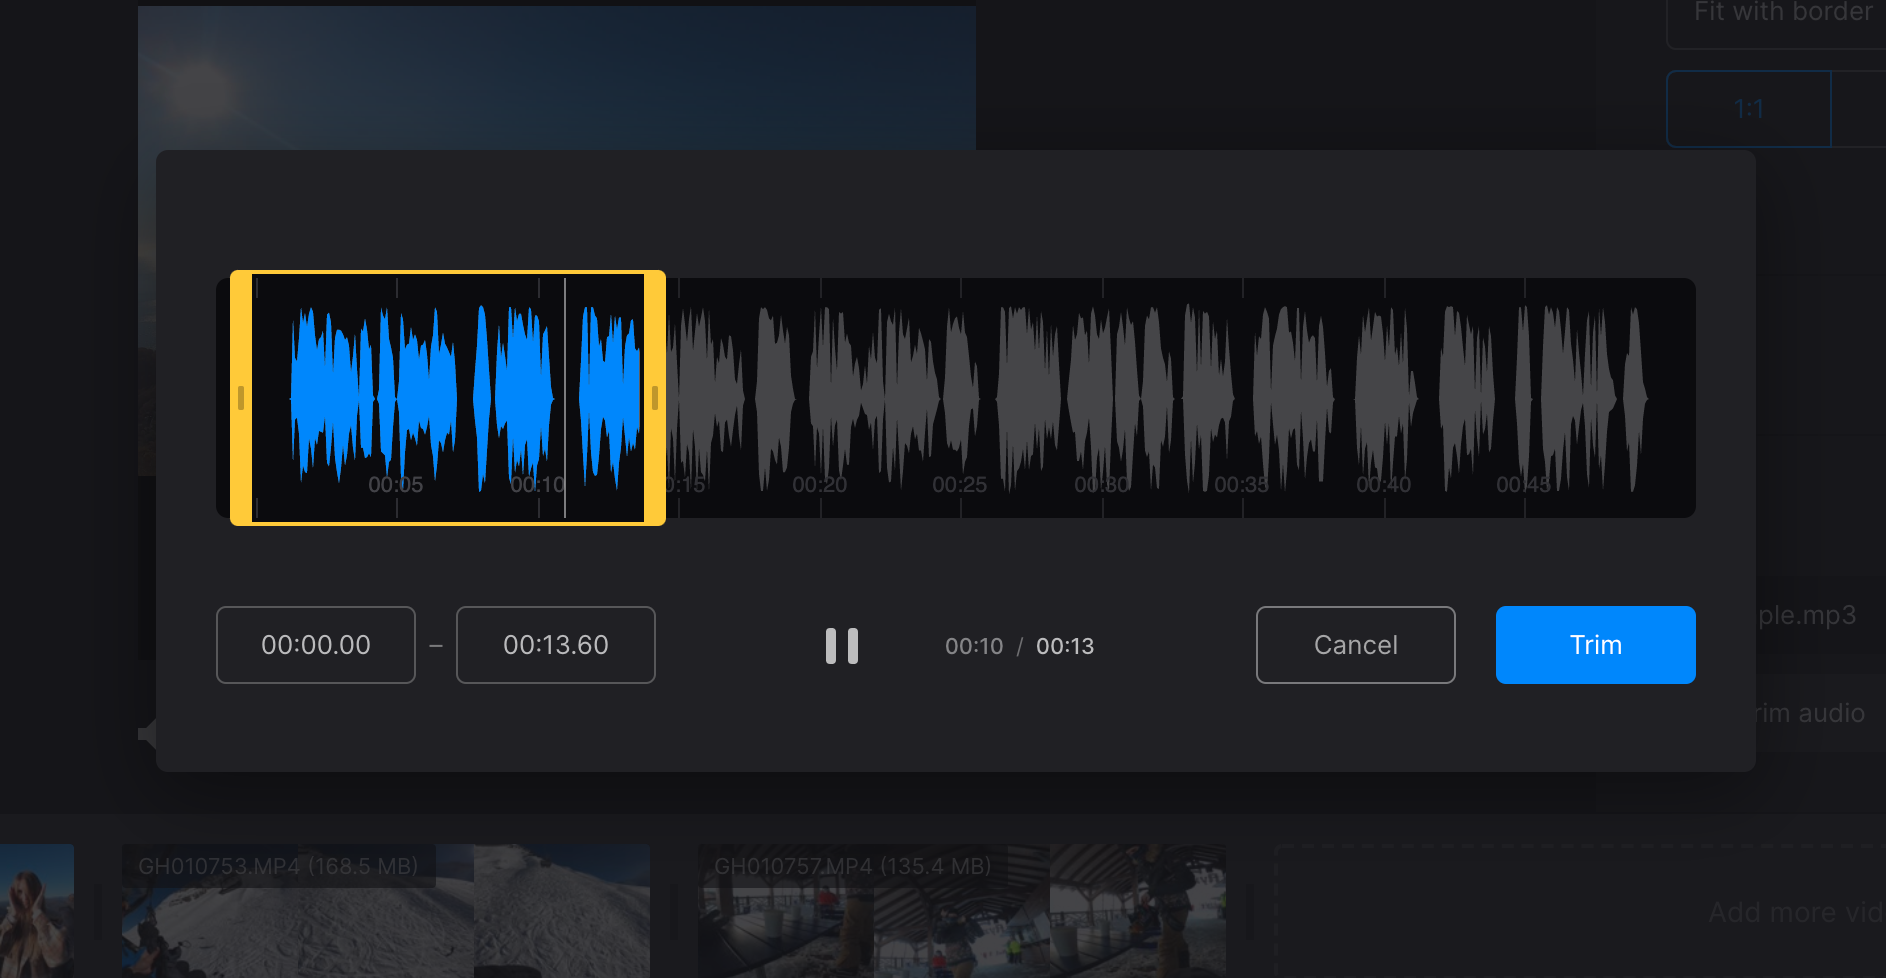 Cut audio for YouTube video compilation